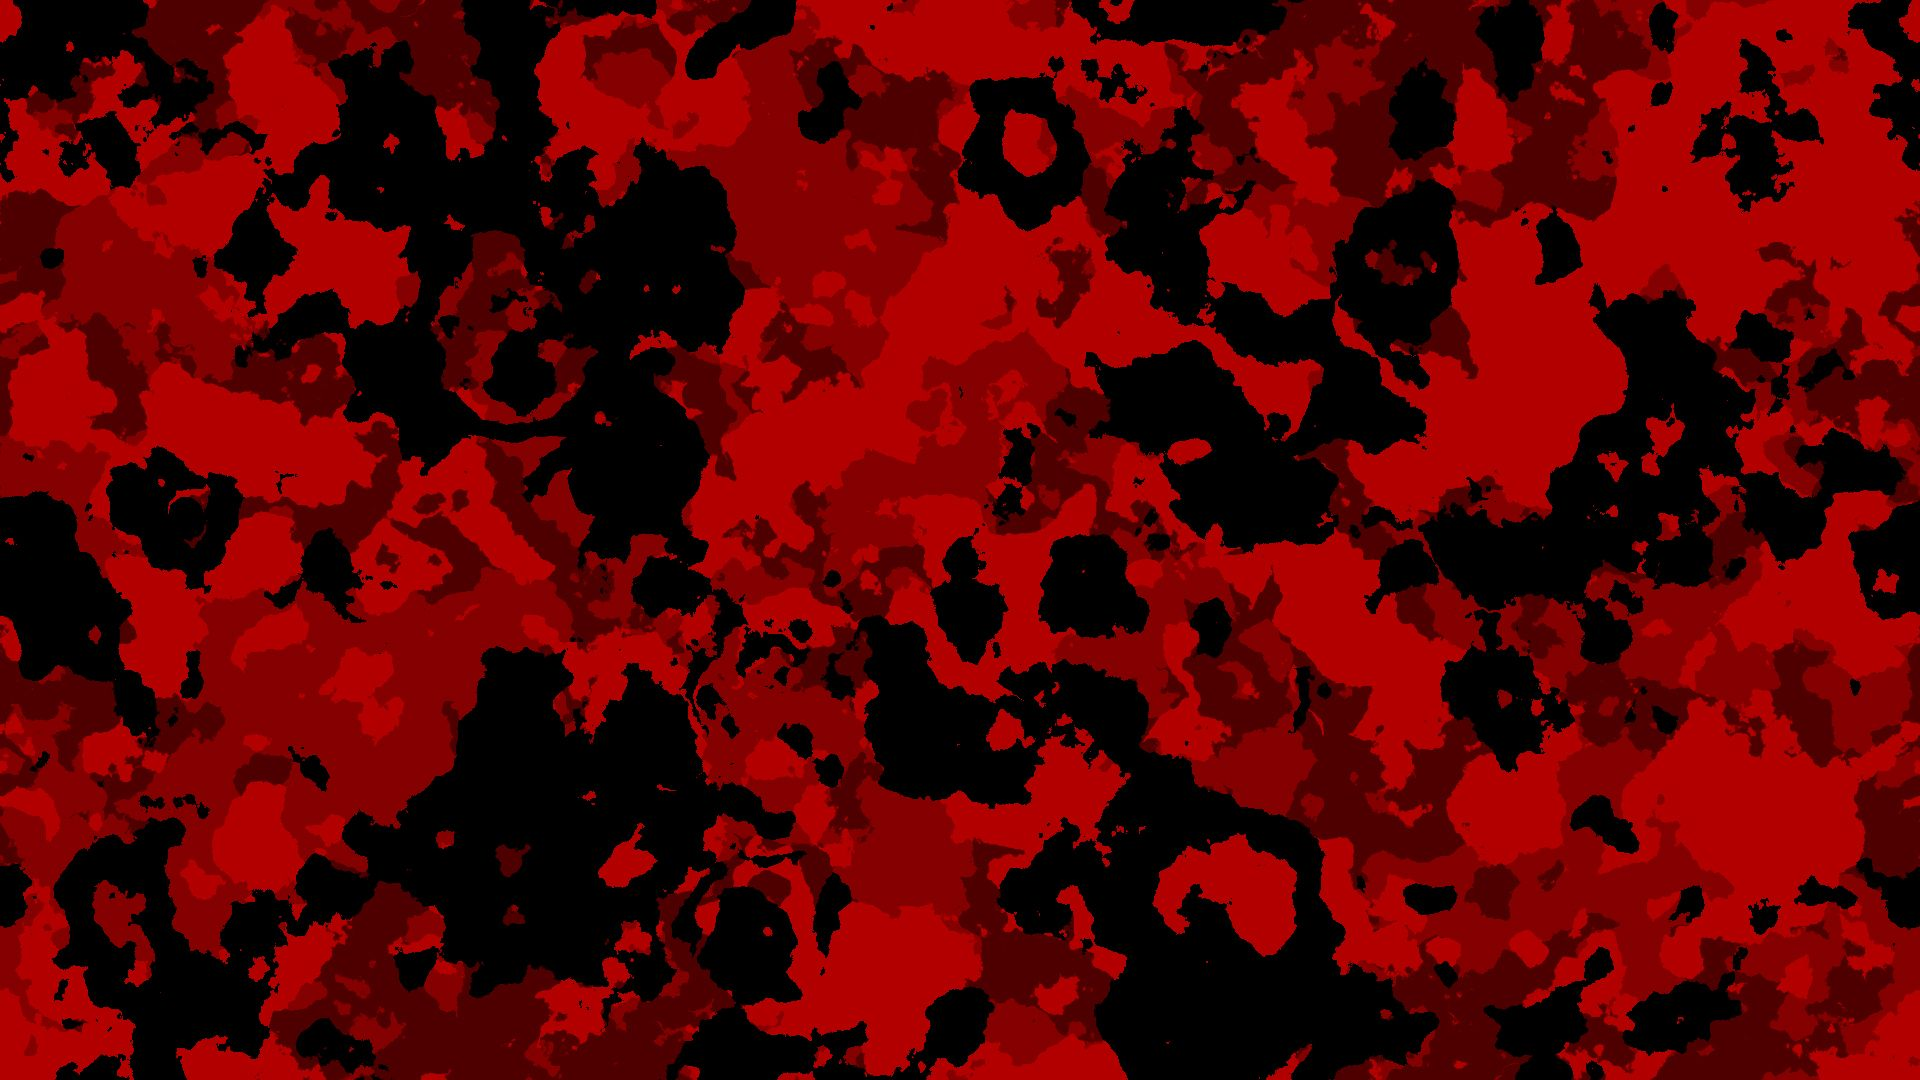 Couldn T Find A Decent Red Camouflage Wallpaper So I Made One Instead 1920x1080 Camo Wallpaper Camouflage Wallpaper Bape Wallpapers